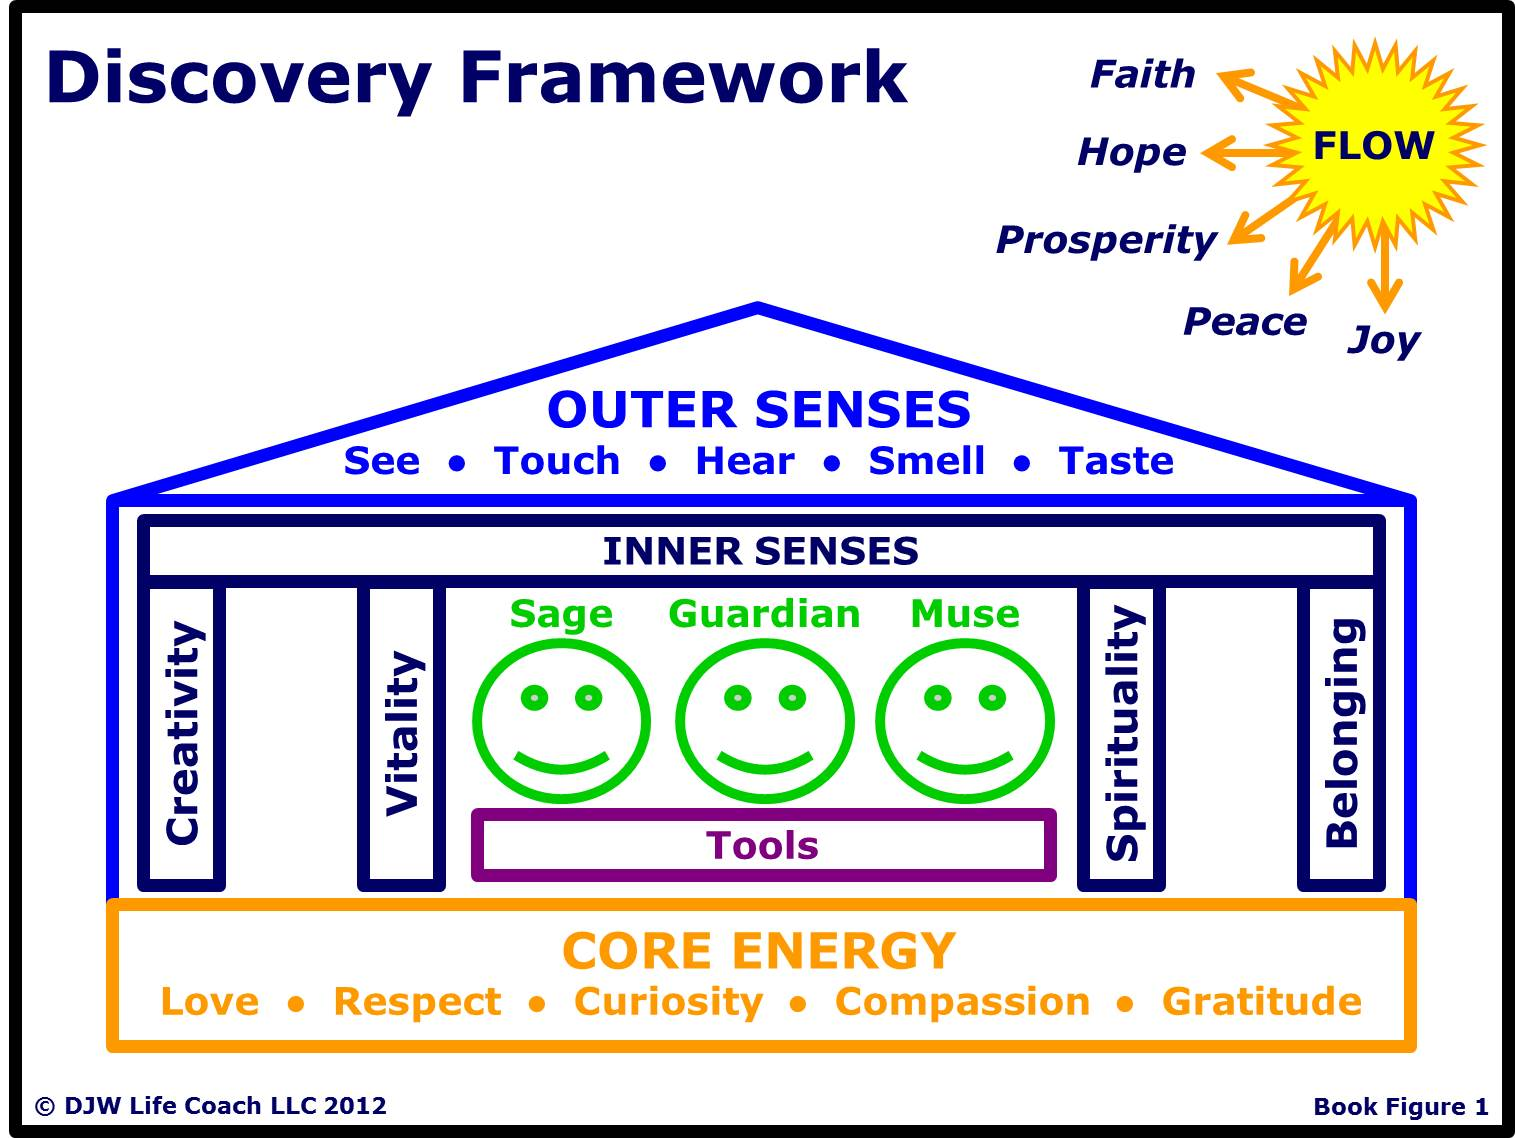 The Discovery Framework™